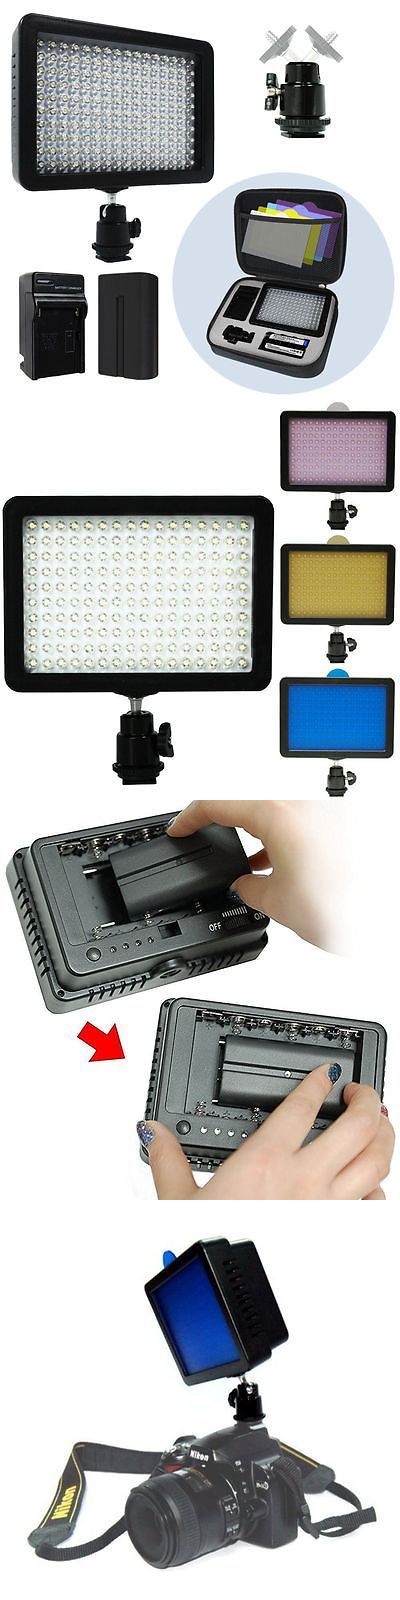 photo and video: Bright 160 Led Studio Photo Video Light For Canon Nikon Dslr Camera Dv Camcorder -> BUY IT NOW ONLY: $31.99 on eBay!